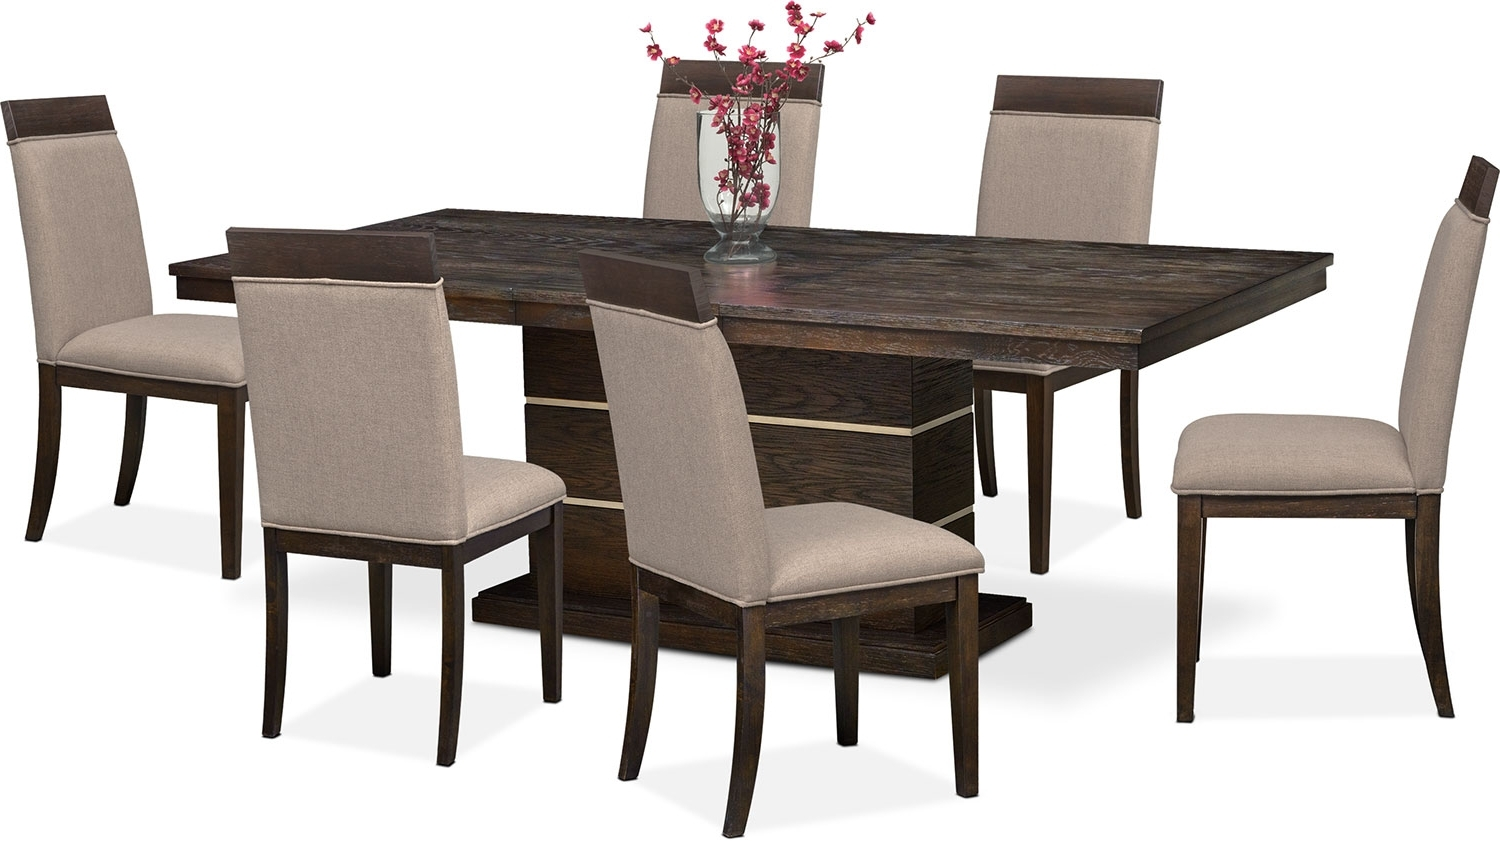 Value City Regarding Popular Gavin 7 Piece Dining Sets With Clint Side Chairs (View 22 of 25)